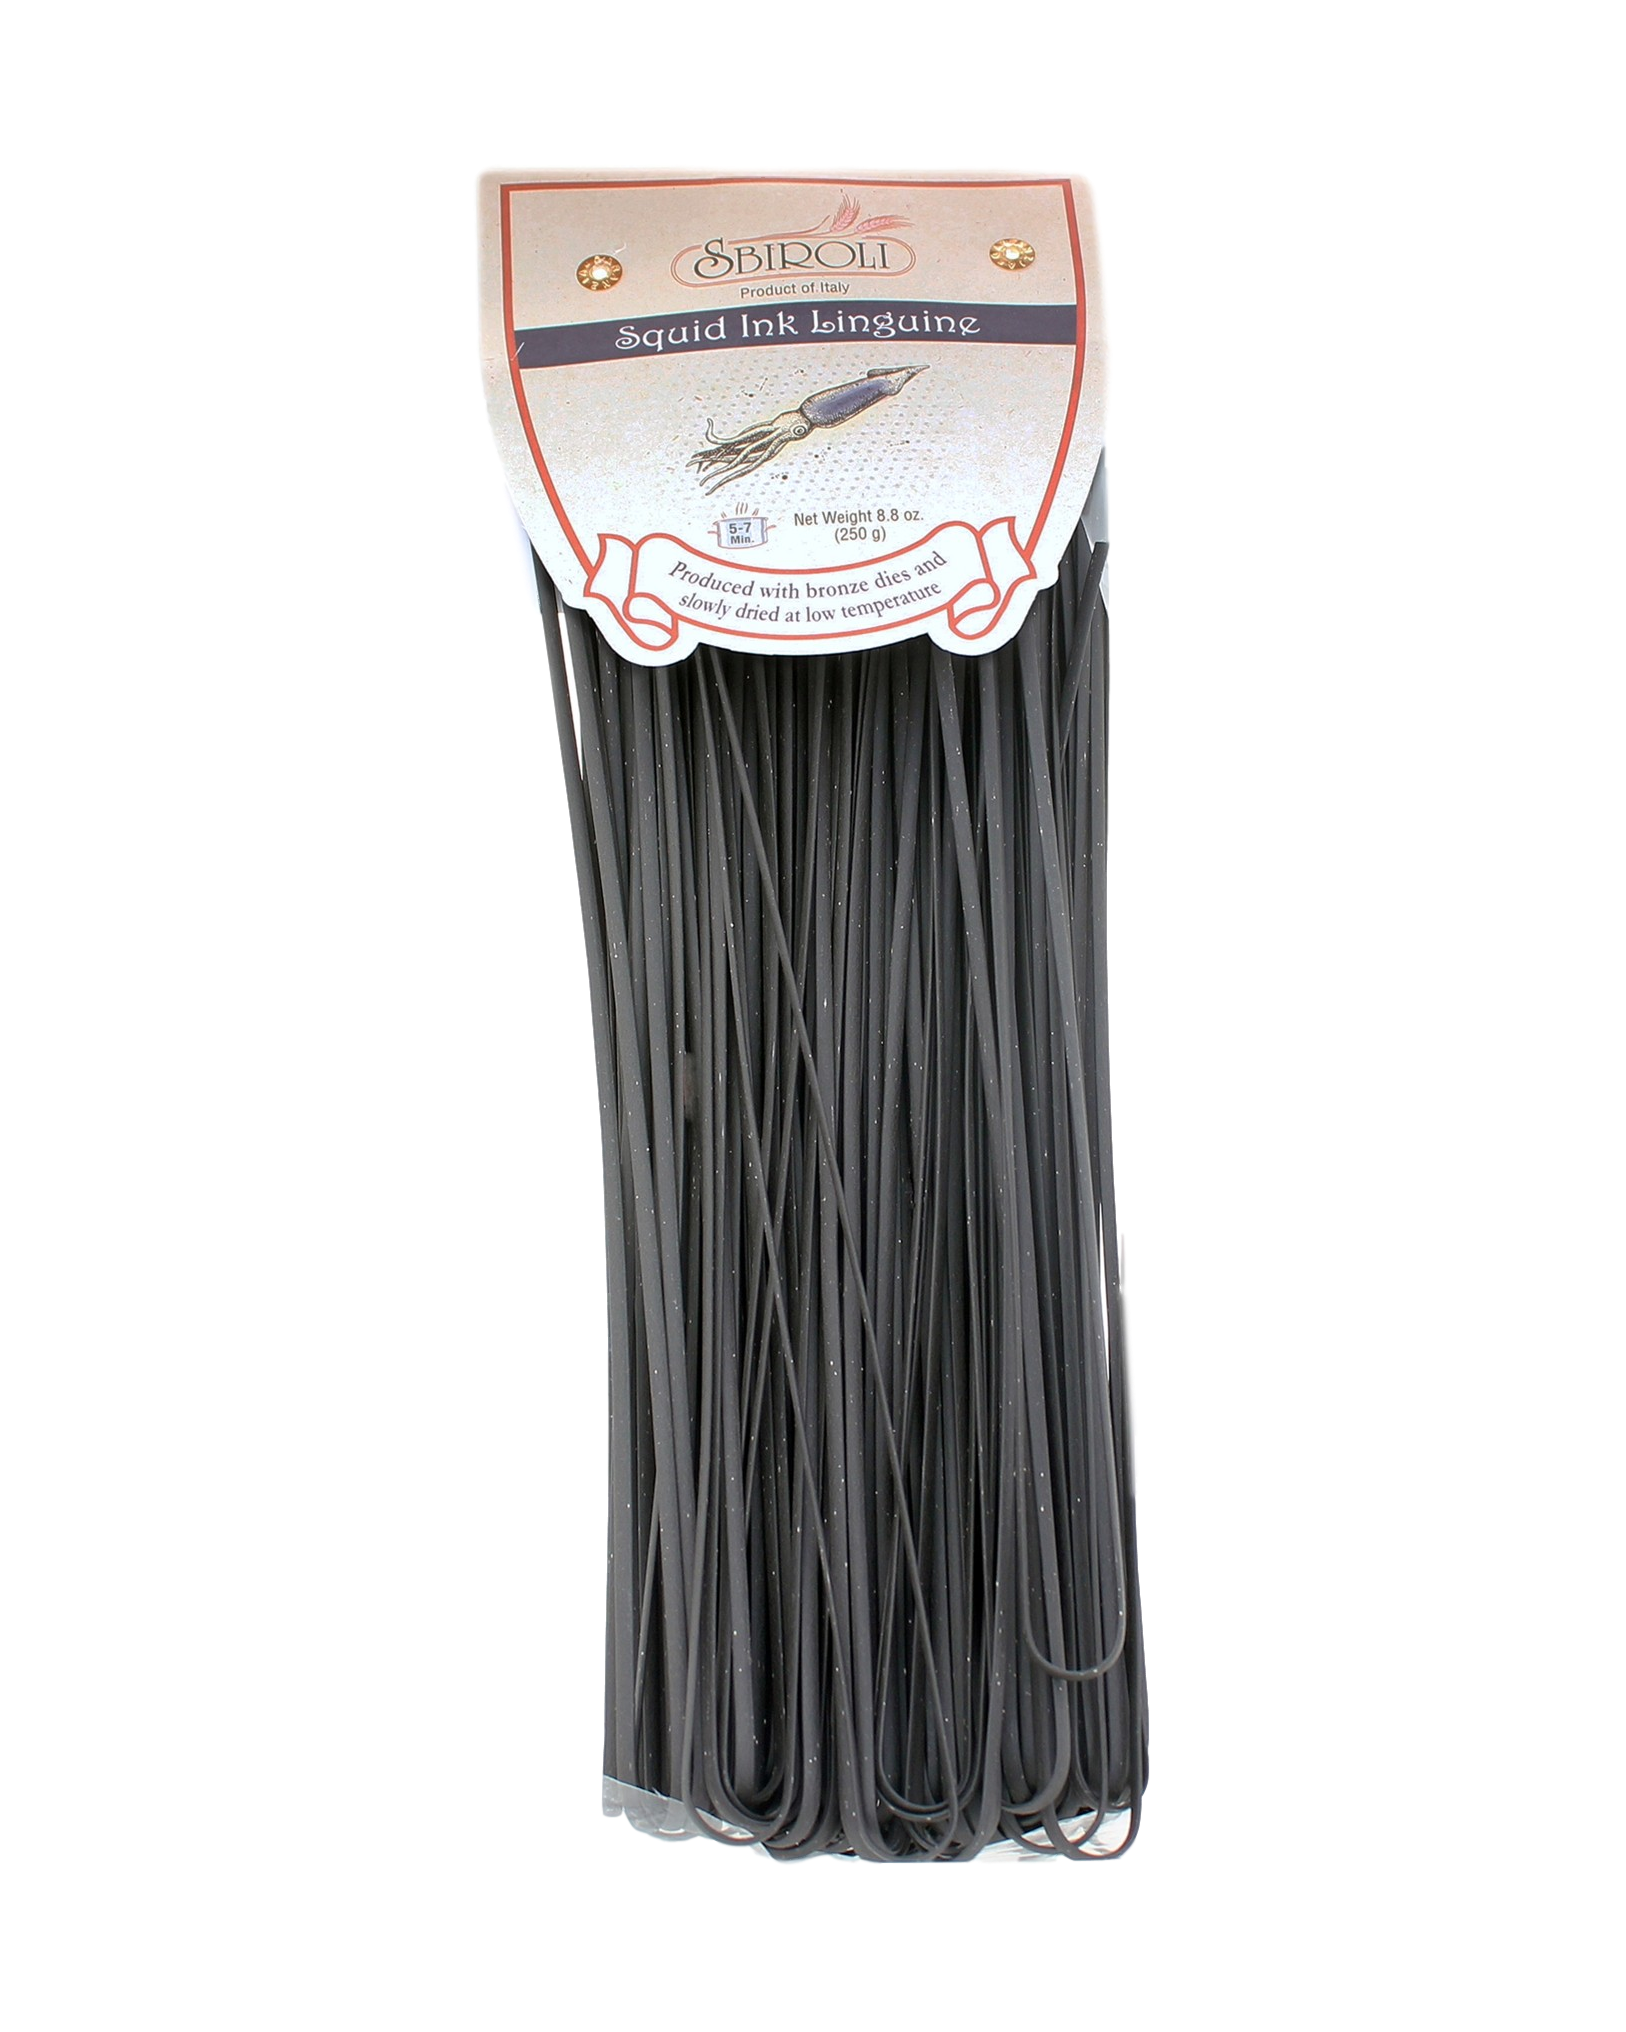 Sbiroli Squid Ink Linguine